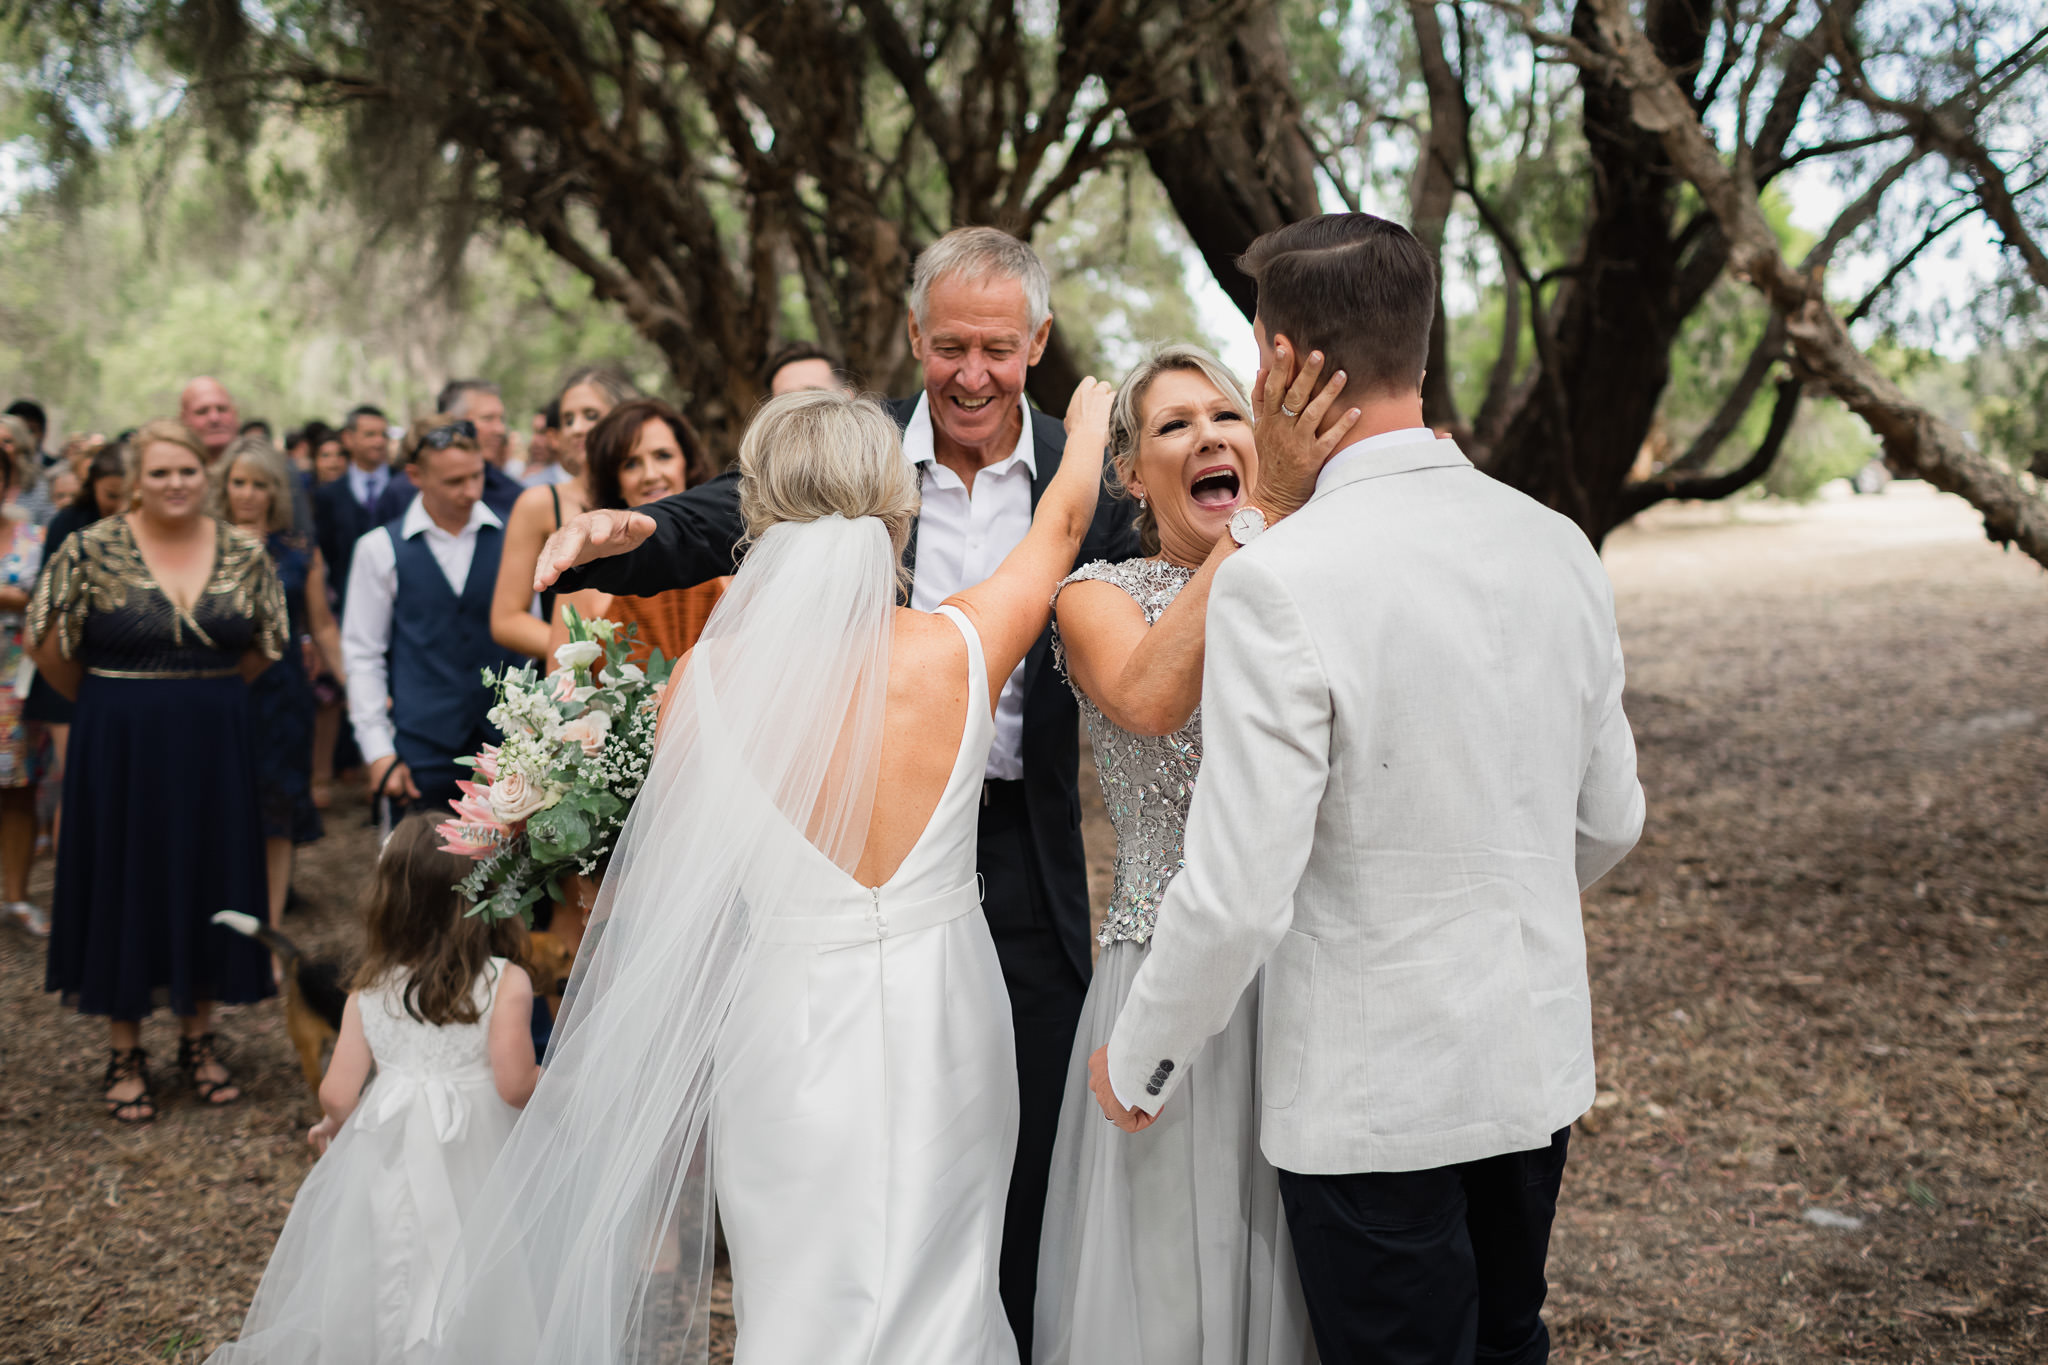 Mother of the groom excitedly hugging son after wedding ceremony in Yallingup